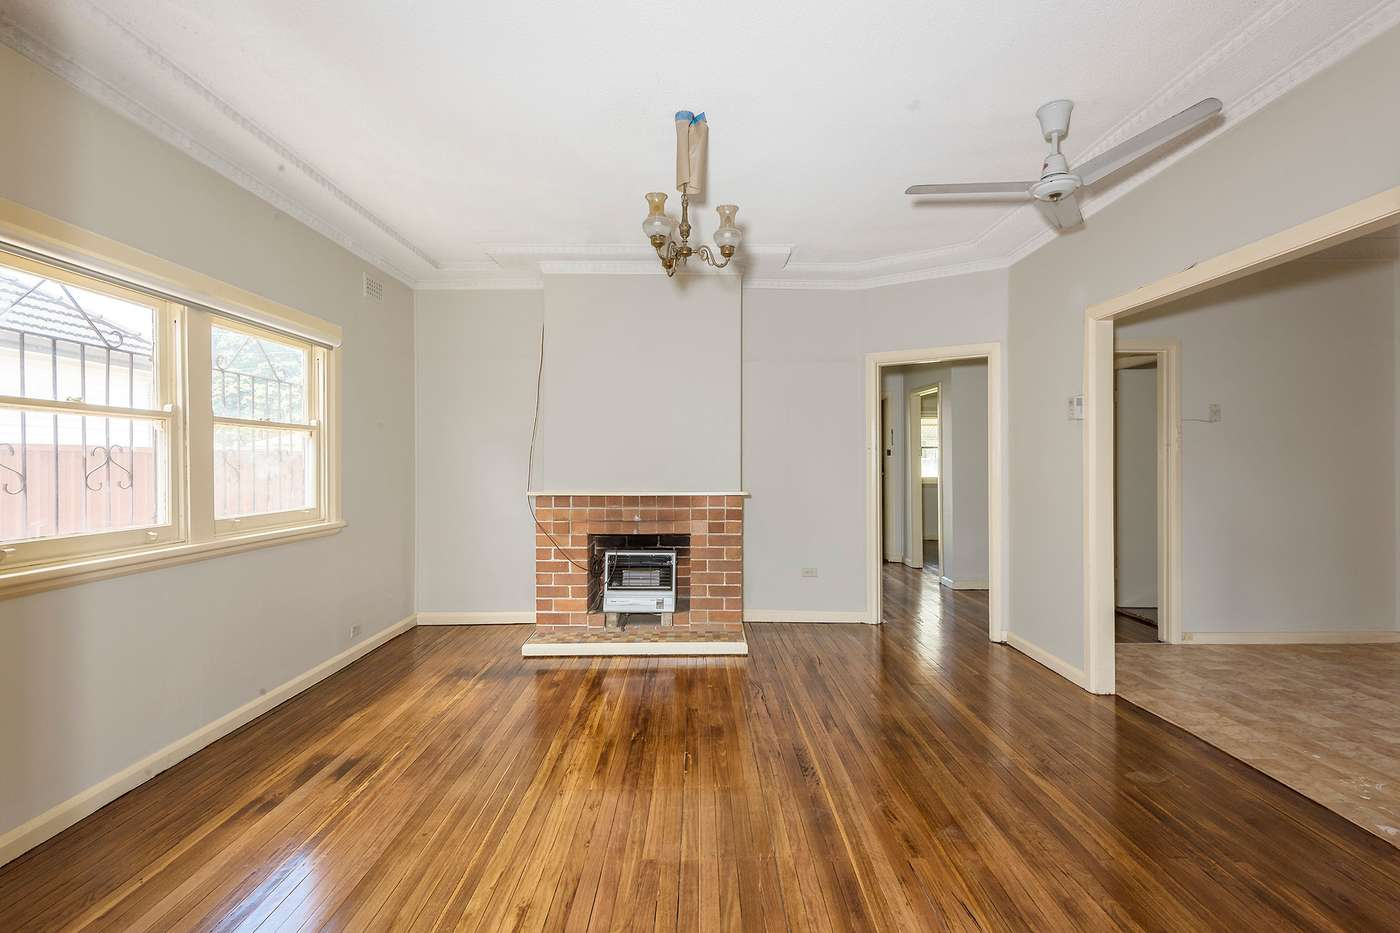 Main view of Homely house listing, 110 Arthur Street, Parramatta, NSW 2150